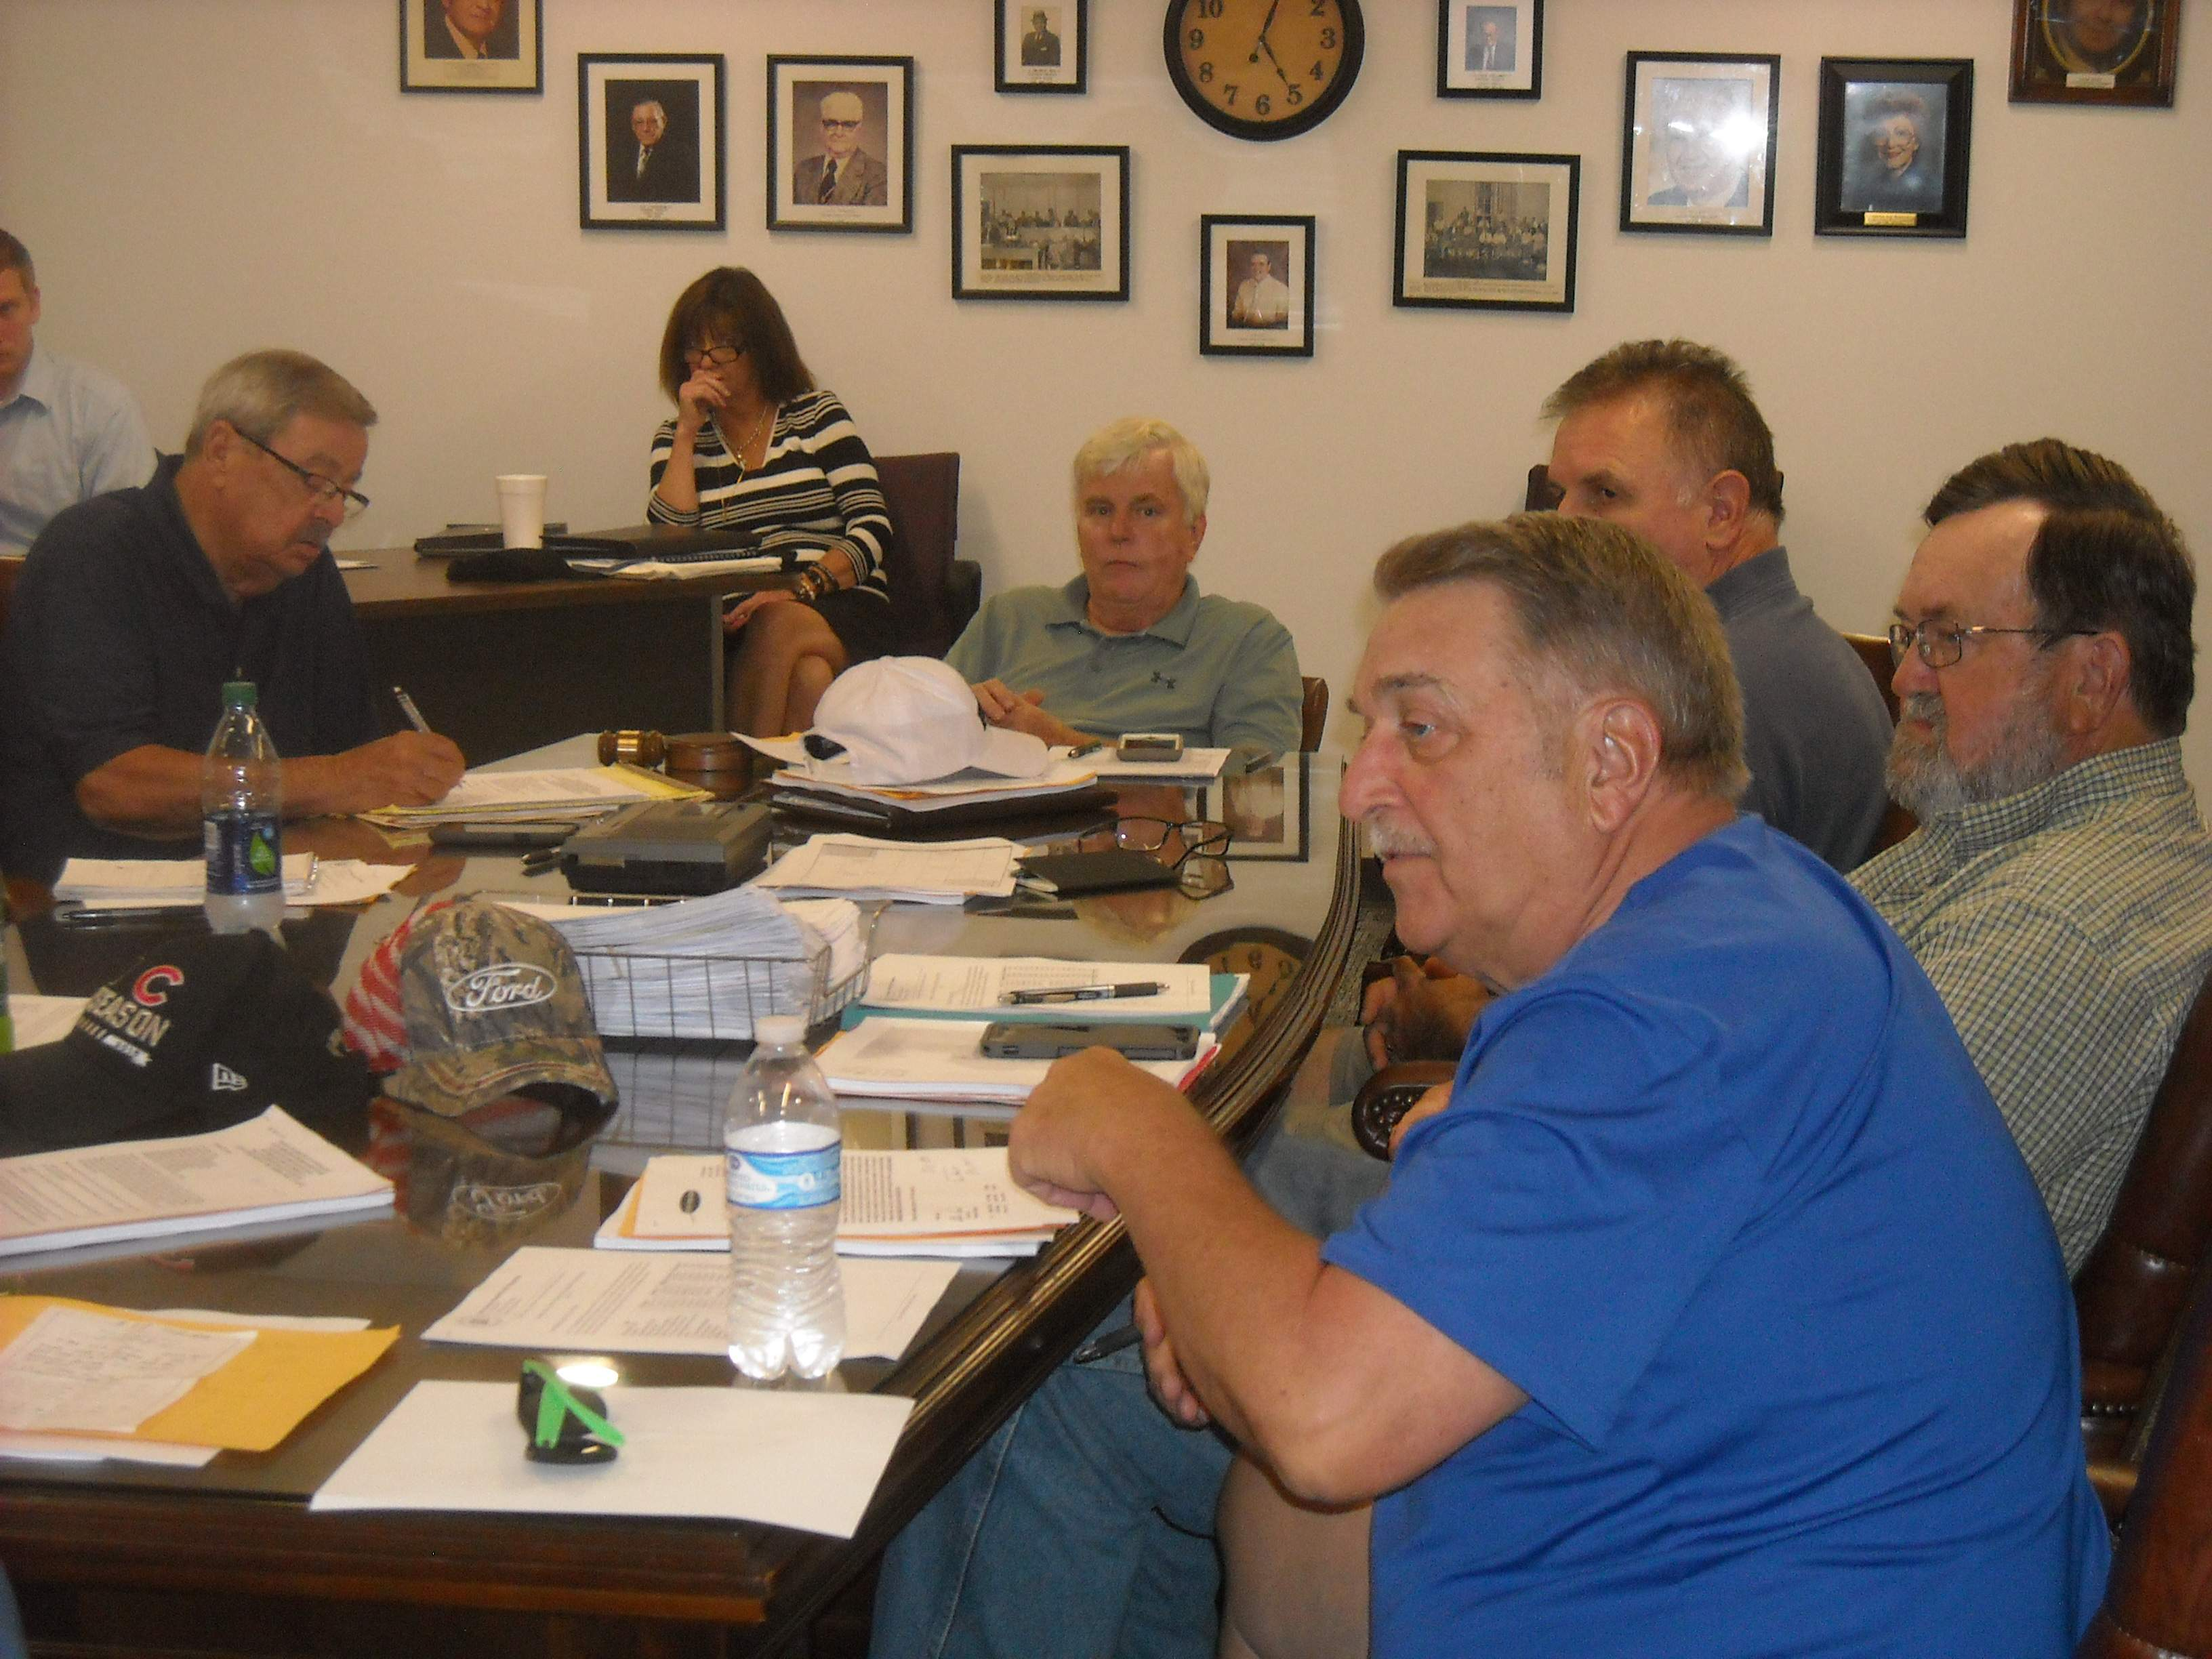 Franklin County Board members discussed several topics during committee meetings held Monday at the Campbell Building. The Board also went into executive session for a 15-minute discussion about pending litigation. From left are Keith Ward, Randall Crocker, Robert Pierce, Alan Price and Steve Leek.